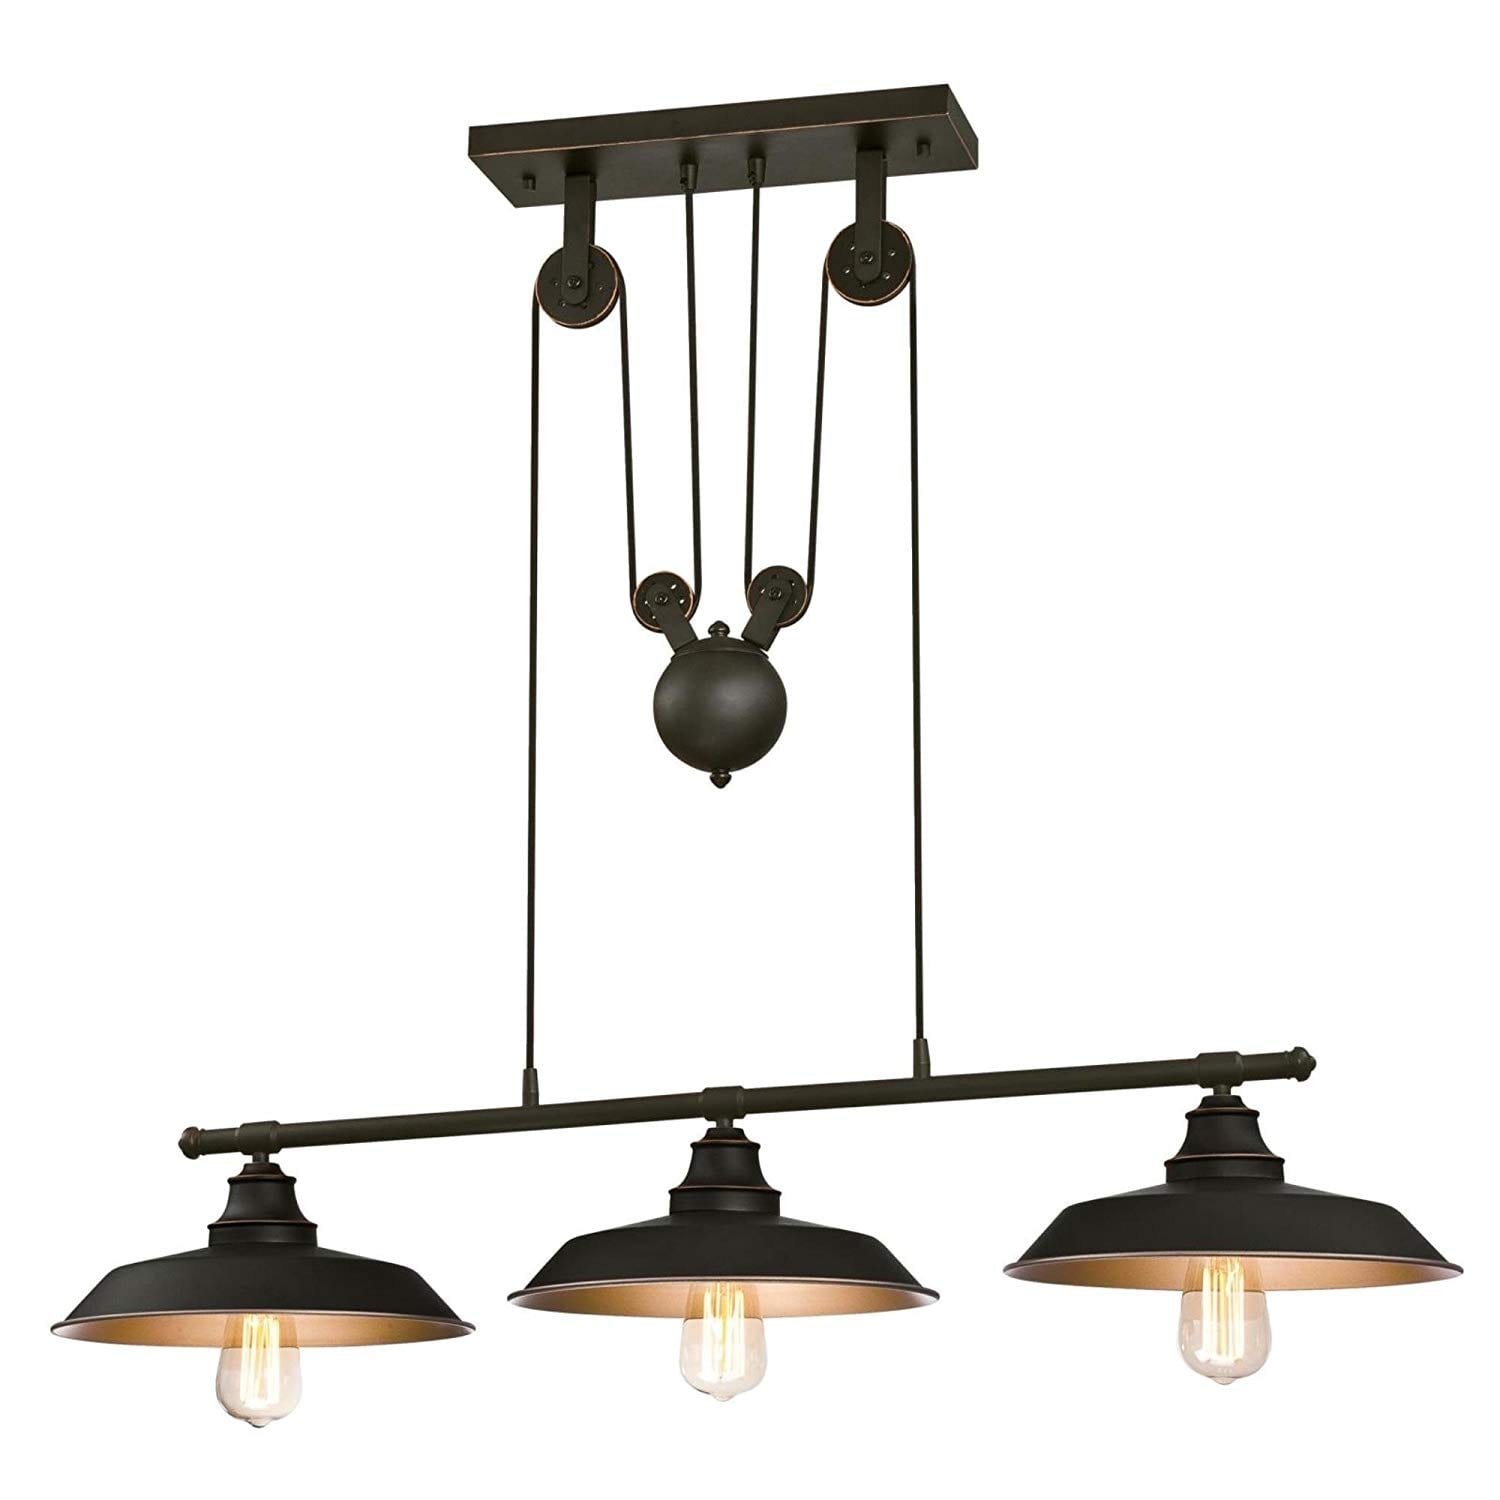 Westinghouse 6332500 Iron Hill 3-Light Island Pulley Pendant Light, Oil Rubbed Finish, Metallic Bronze Interior